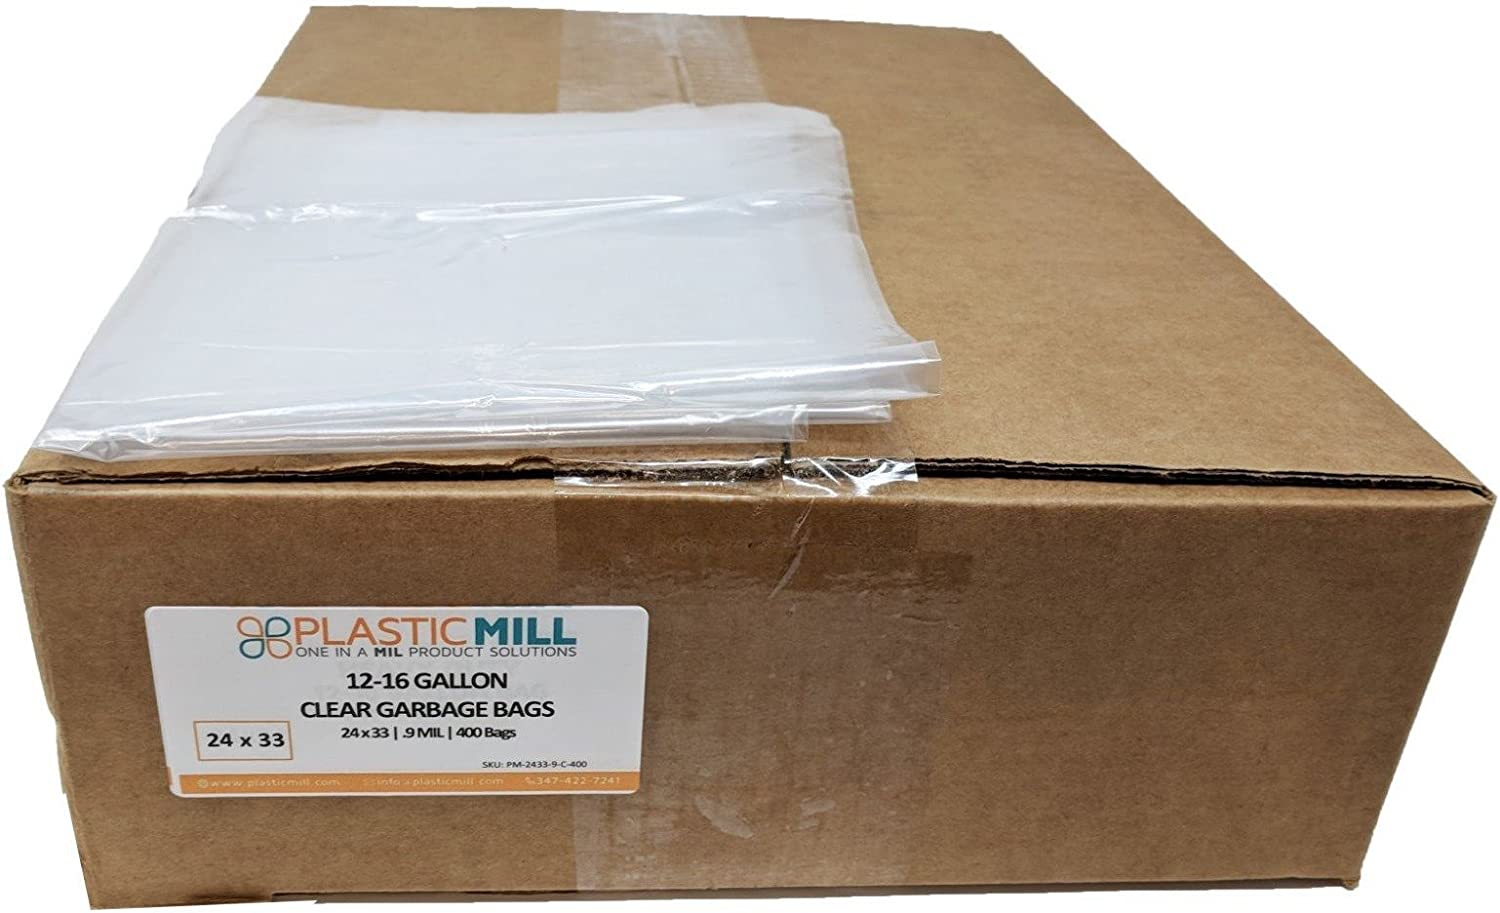 PlasticMill 12-16 Gallon, Clear, 0.9 MIL, 24x33, 400 Bags Case, Garbage Bags Trash Can Liners.